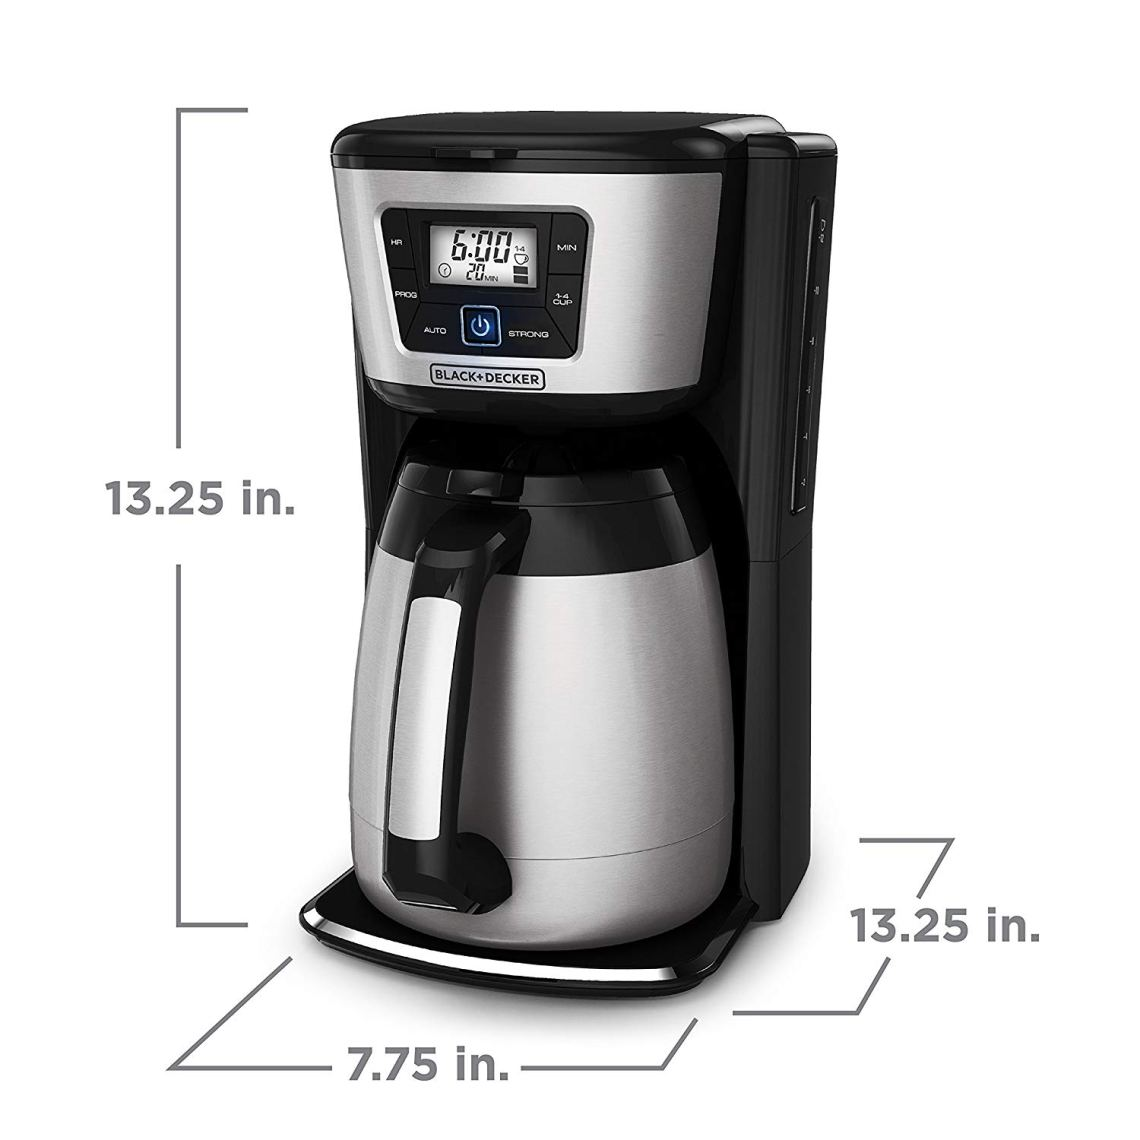 Black-Decker-Coffee-Maker-Info-Graphics